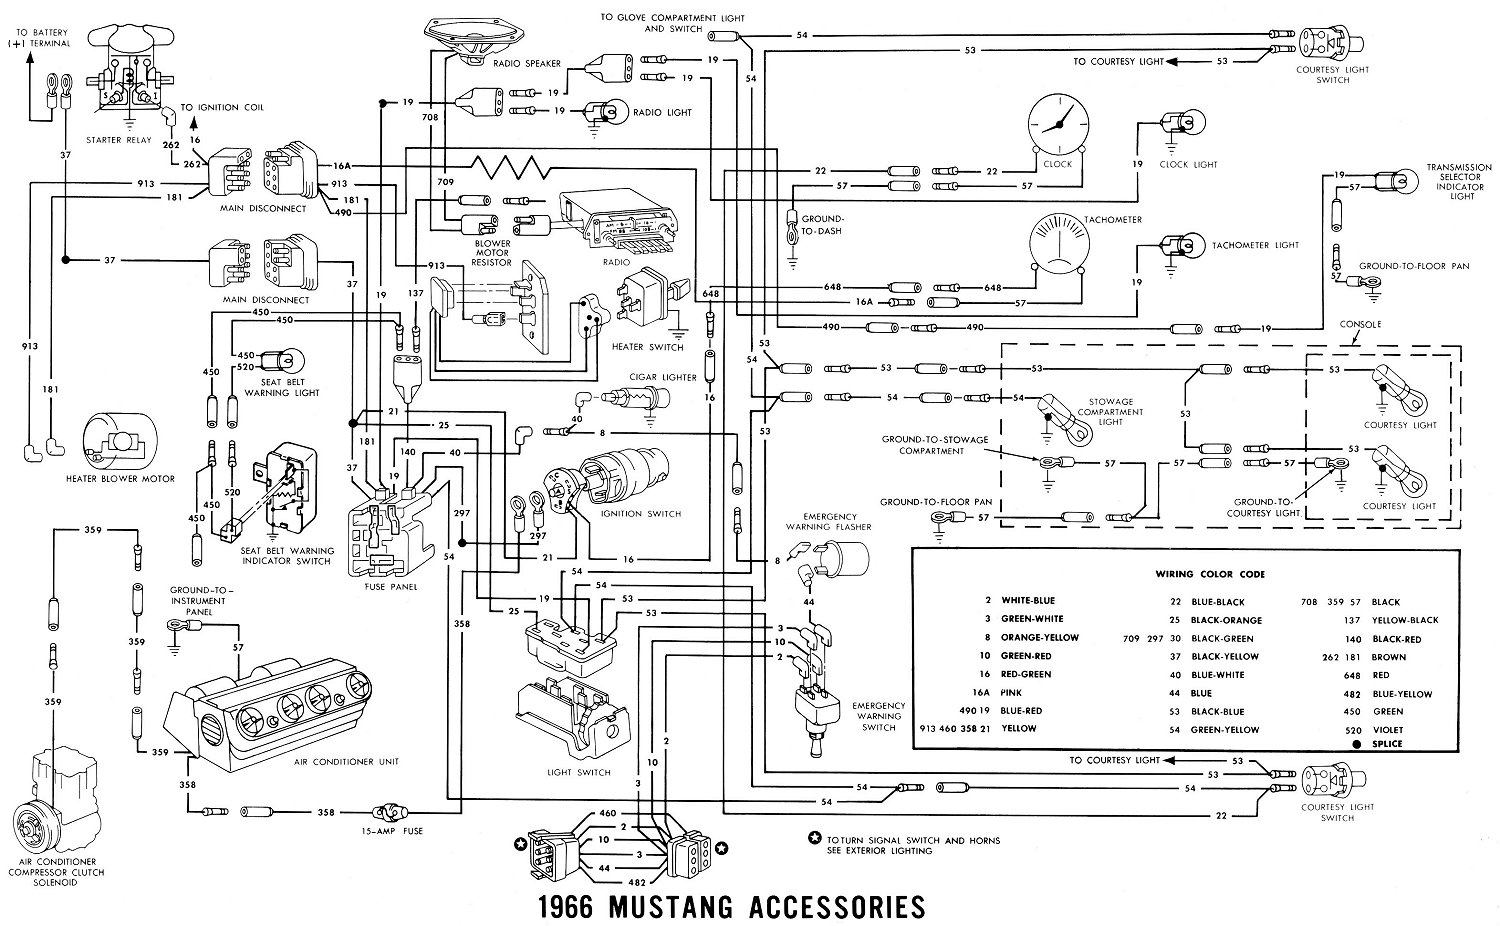 65 Mustang Wiring Harness Diagram Worksheet And 1995 Kawasaki Zx750j Radio Diagrams Detailed Schematics Rh Mrskindsclass Com Turn Signal